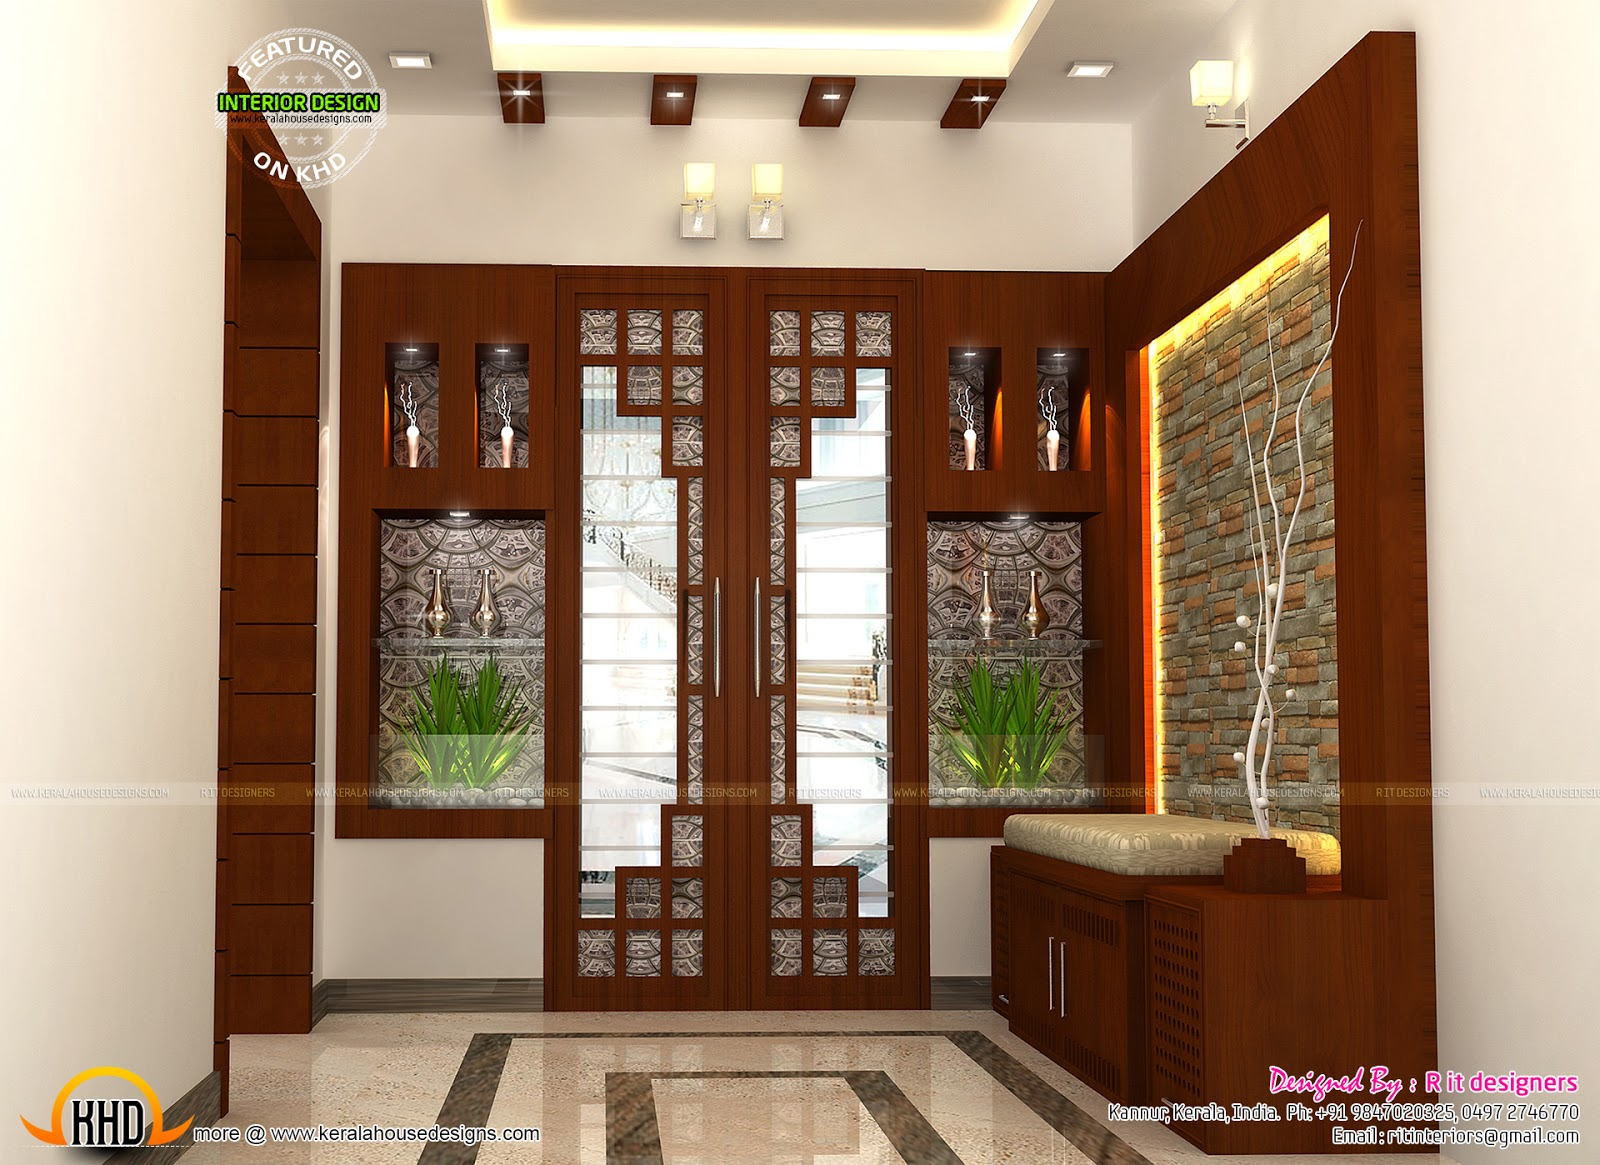 Interior decors by r it designers kerala home design and for Kerala house living room interior design